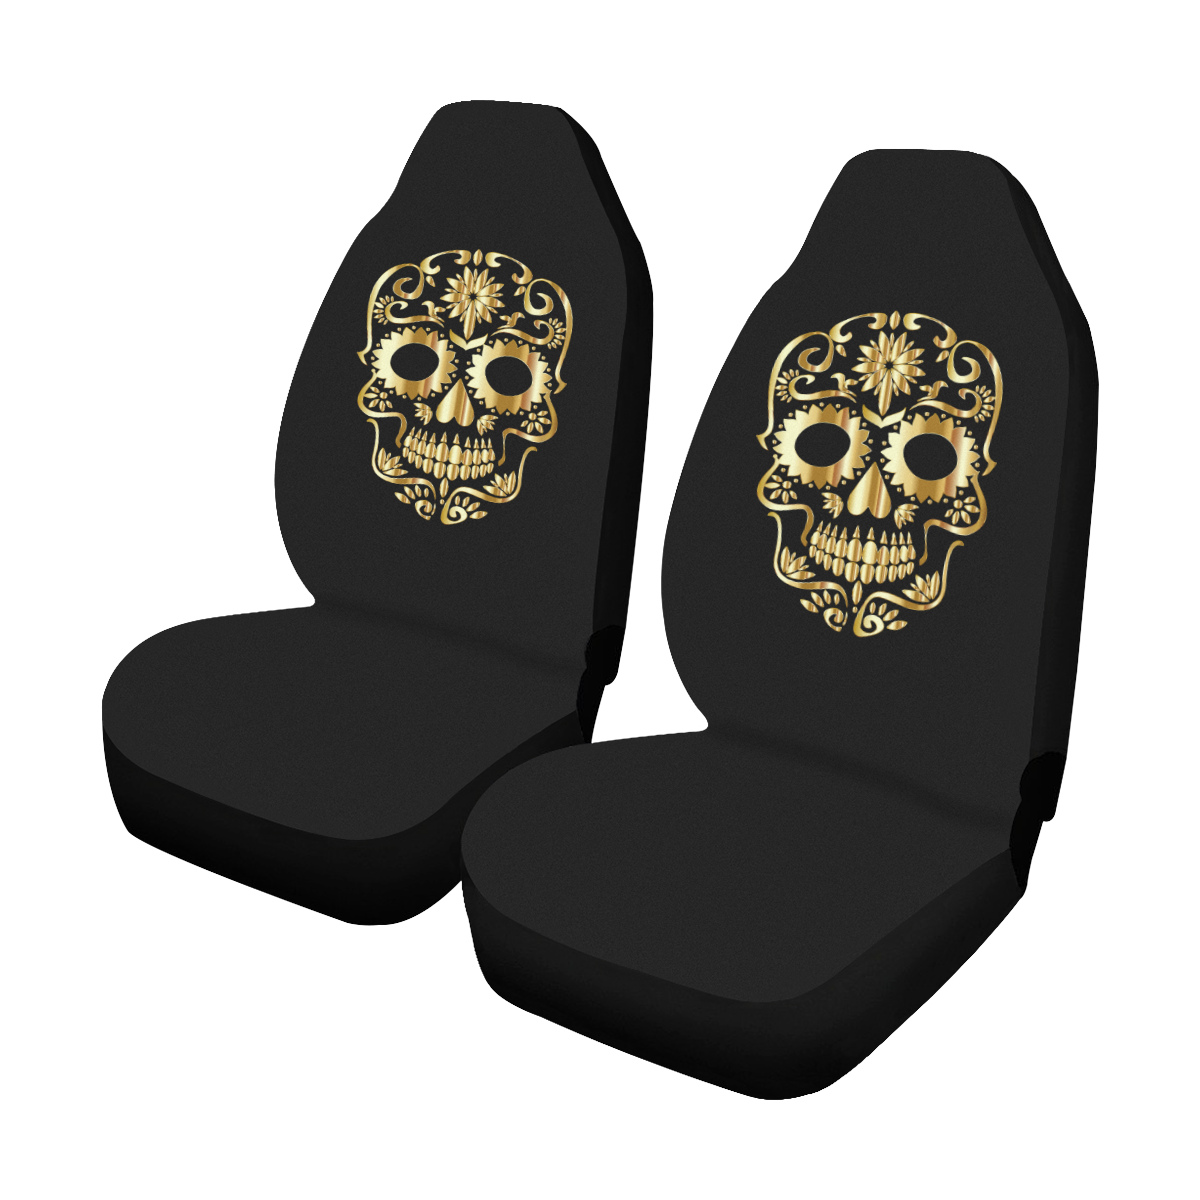 Golden Sugar Skull Black Car Seat Covers Set Of 2